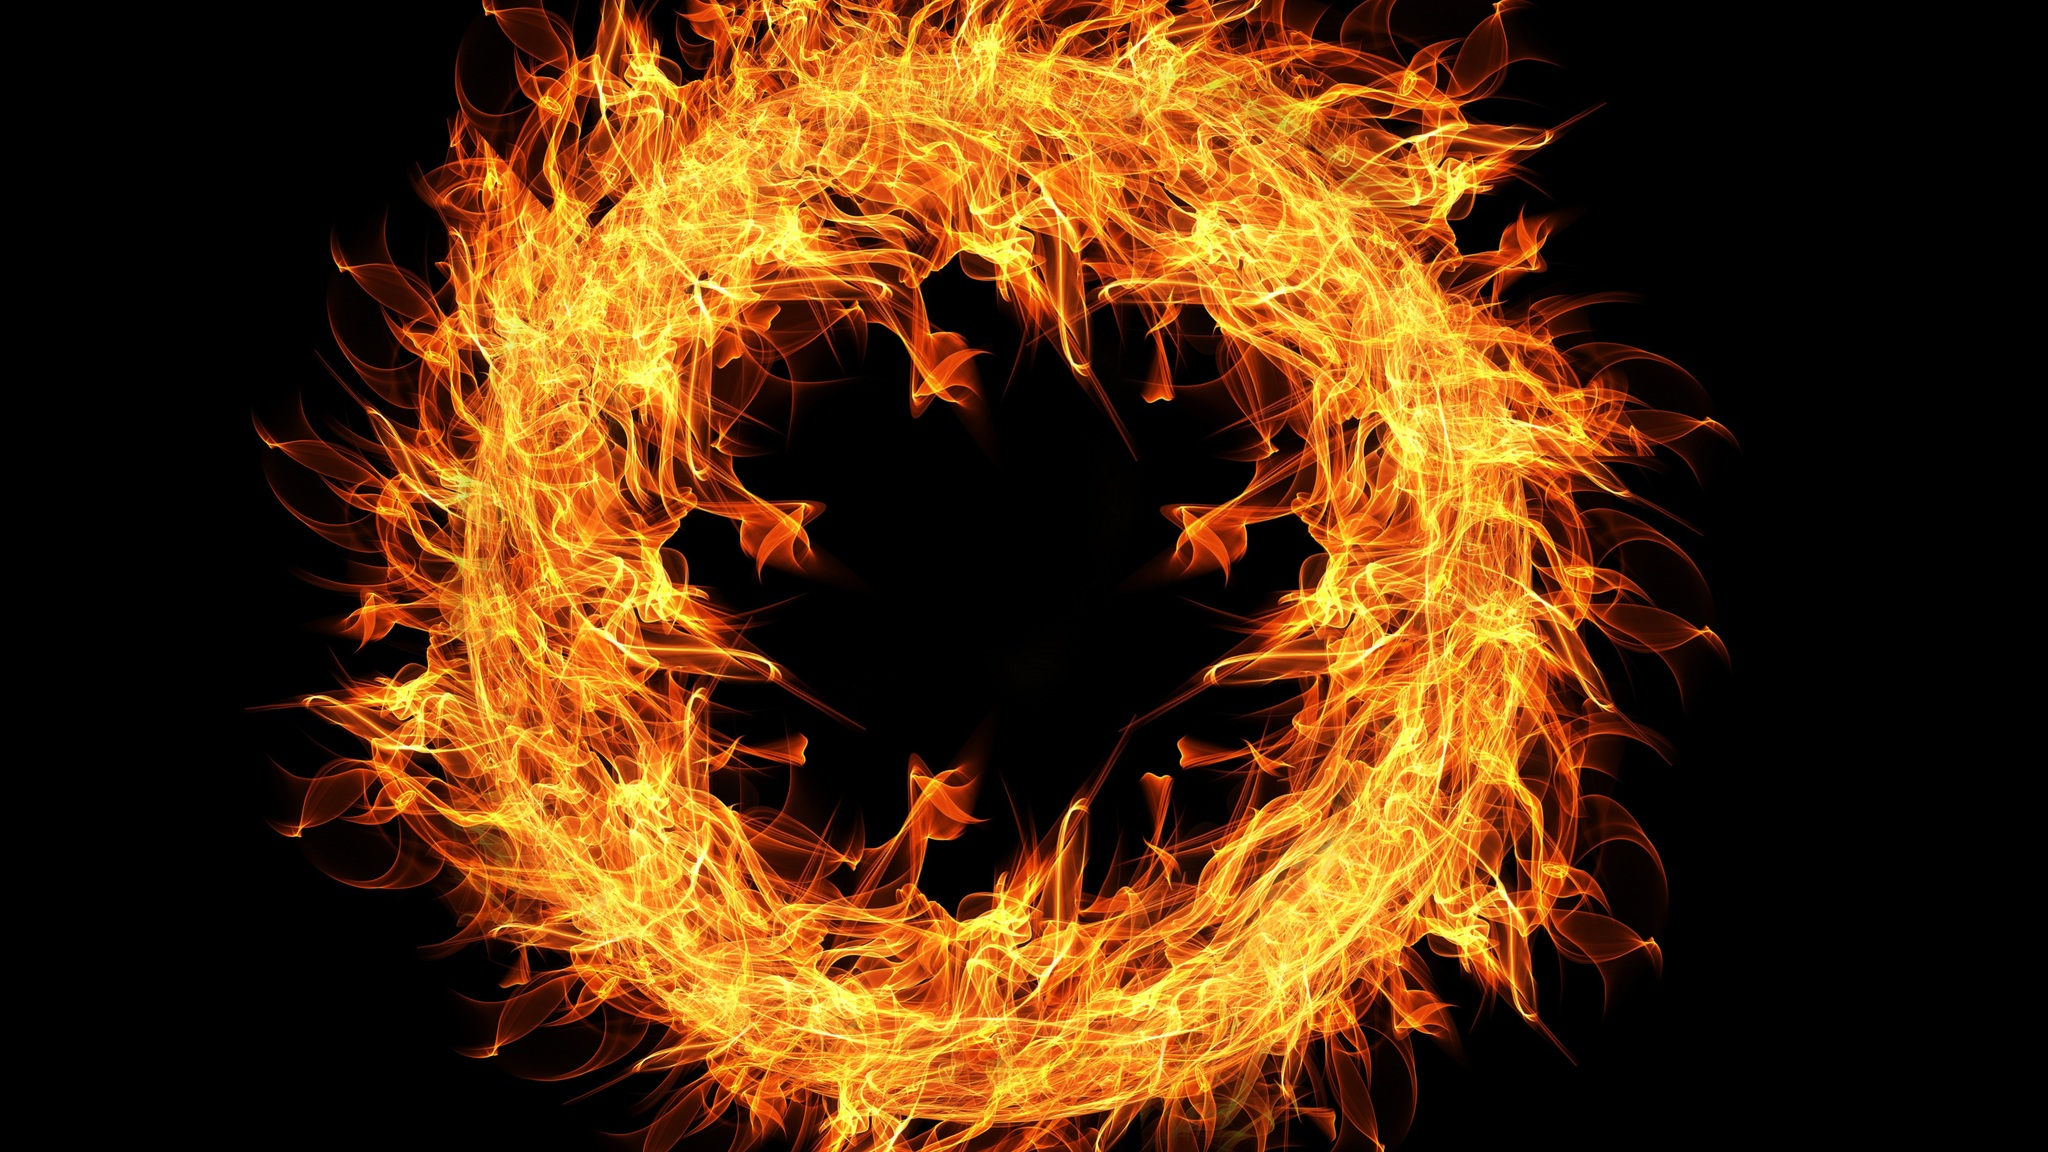 2048x1152 Fire Flame Ring 4k 2048x1152 Resolution Hd 4k Wallpapers